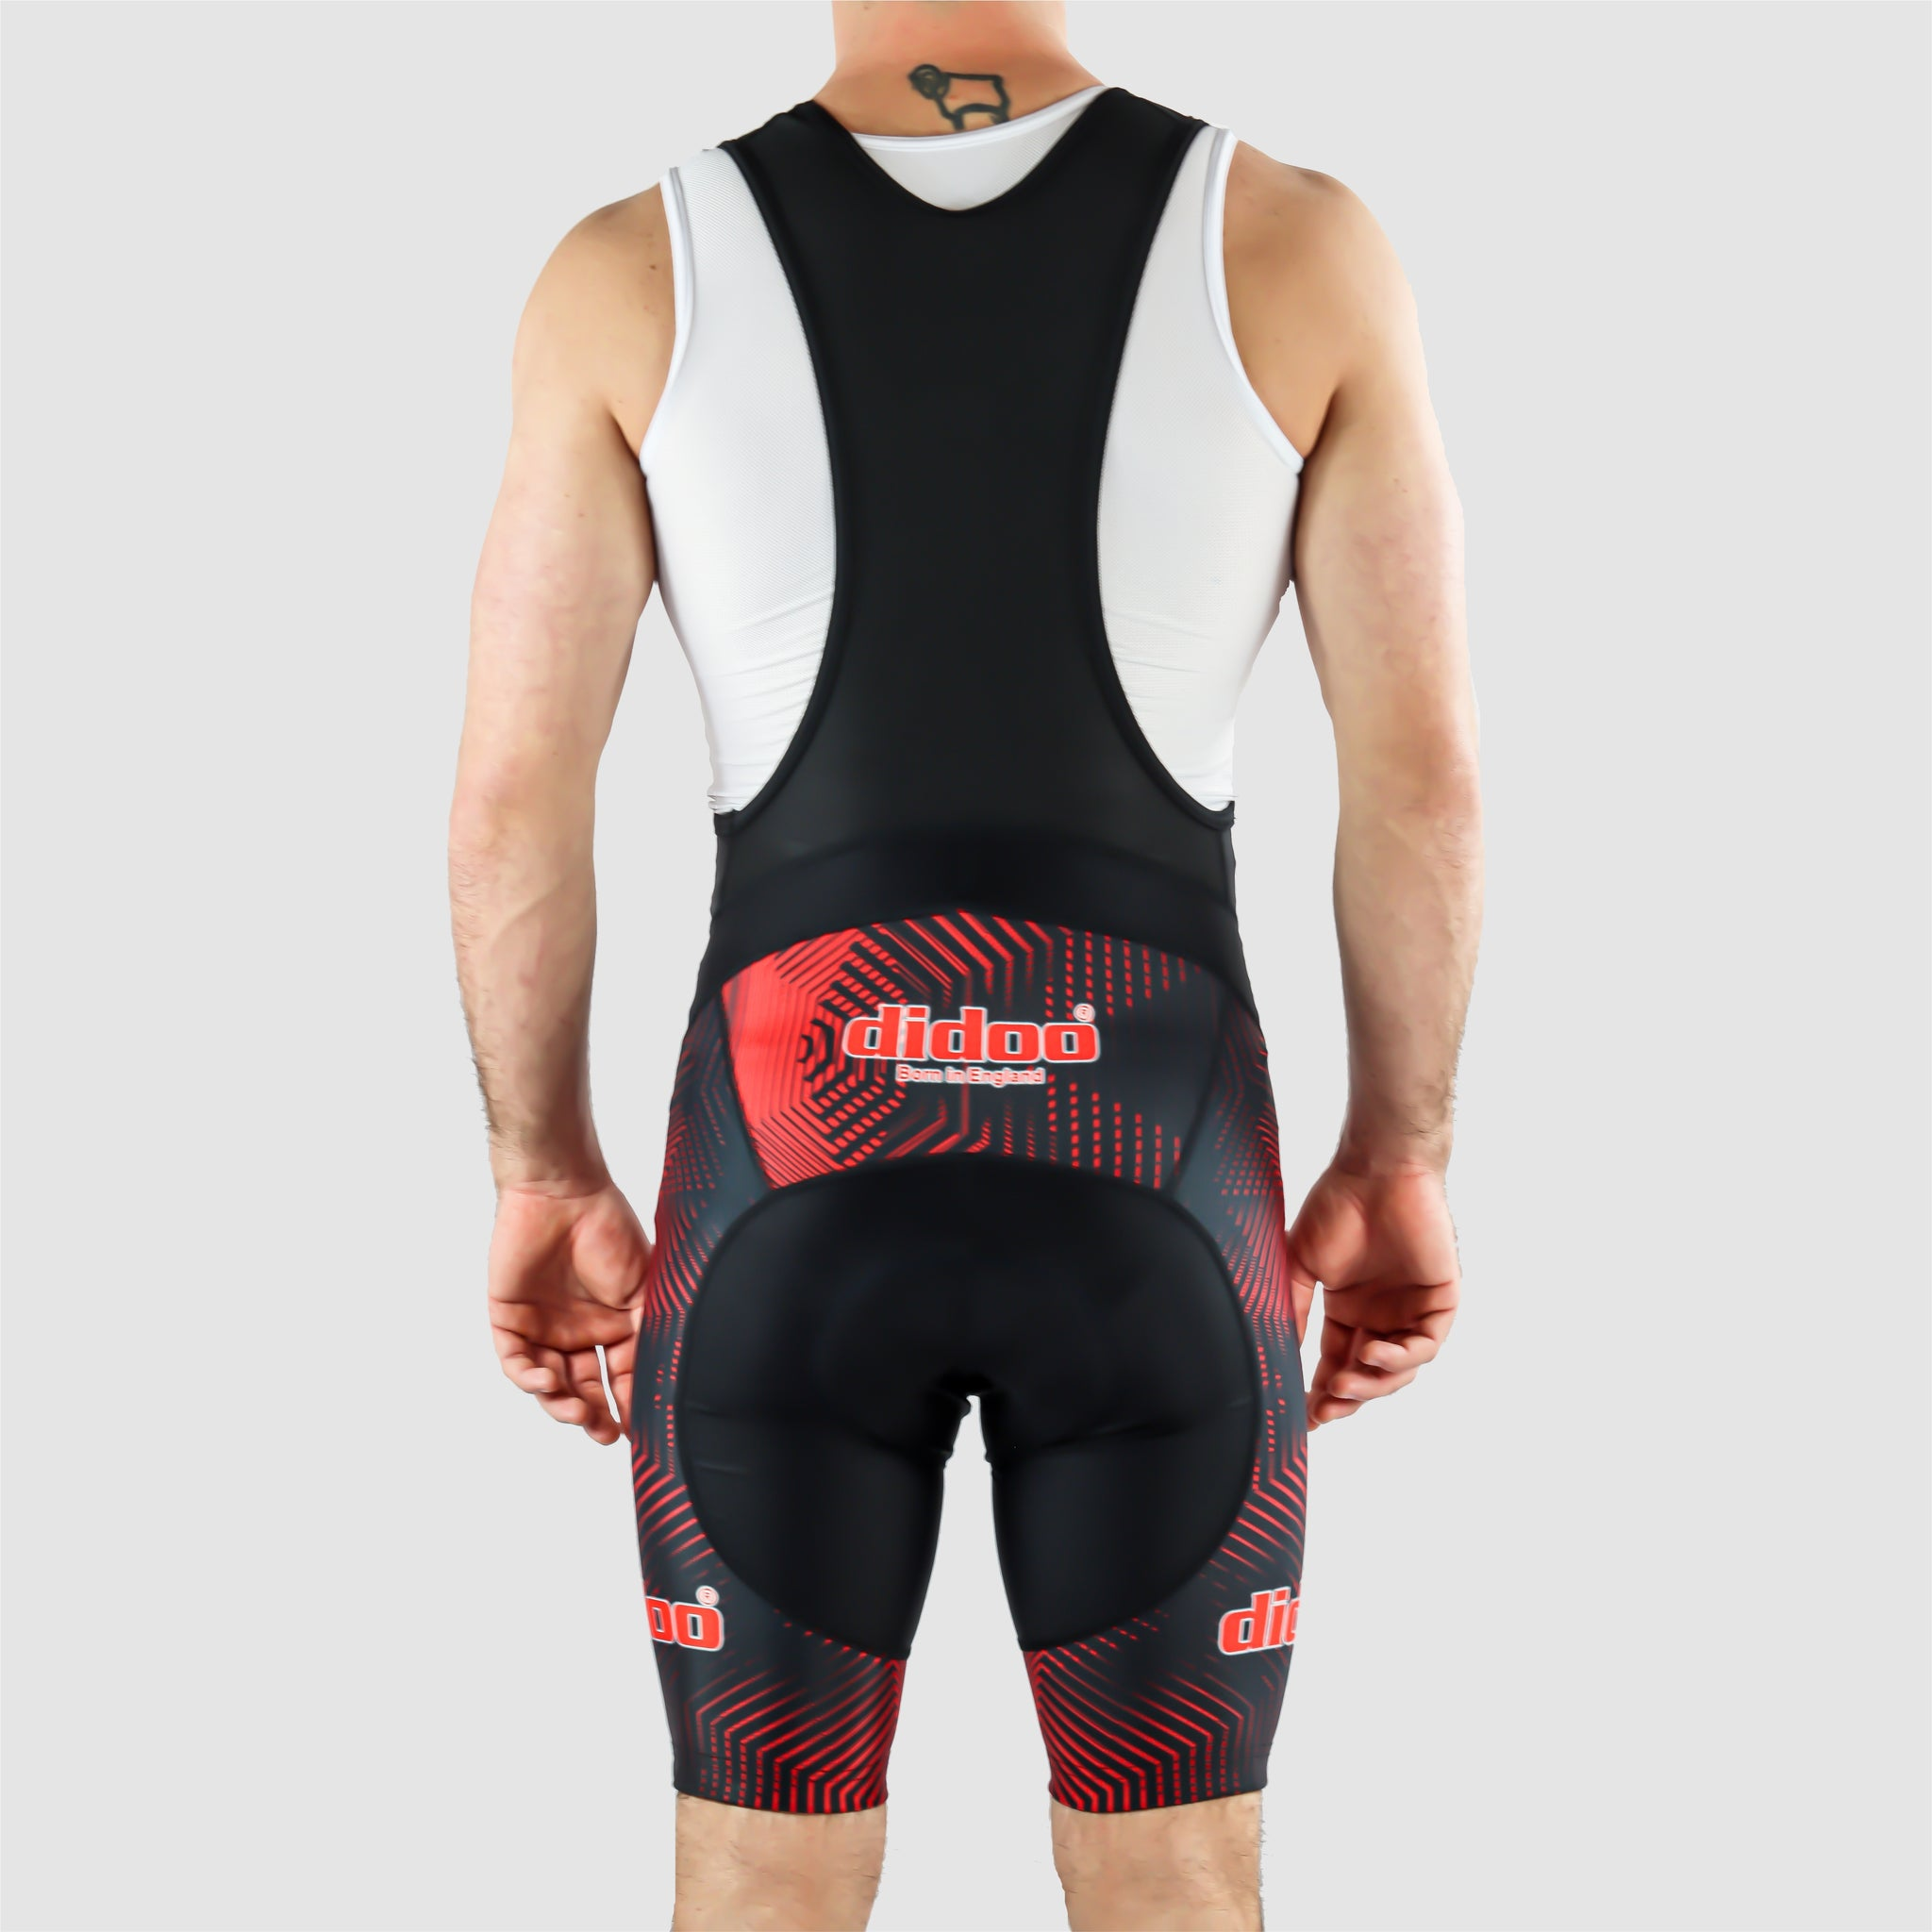 DiDOO Men's Classic Quick Dry Padded Cycling Bib Shorts Black and Red